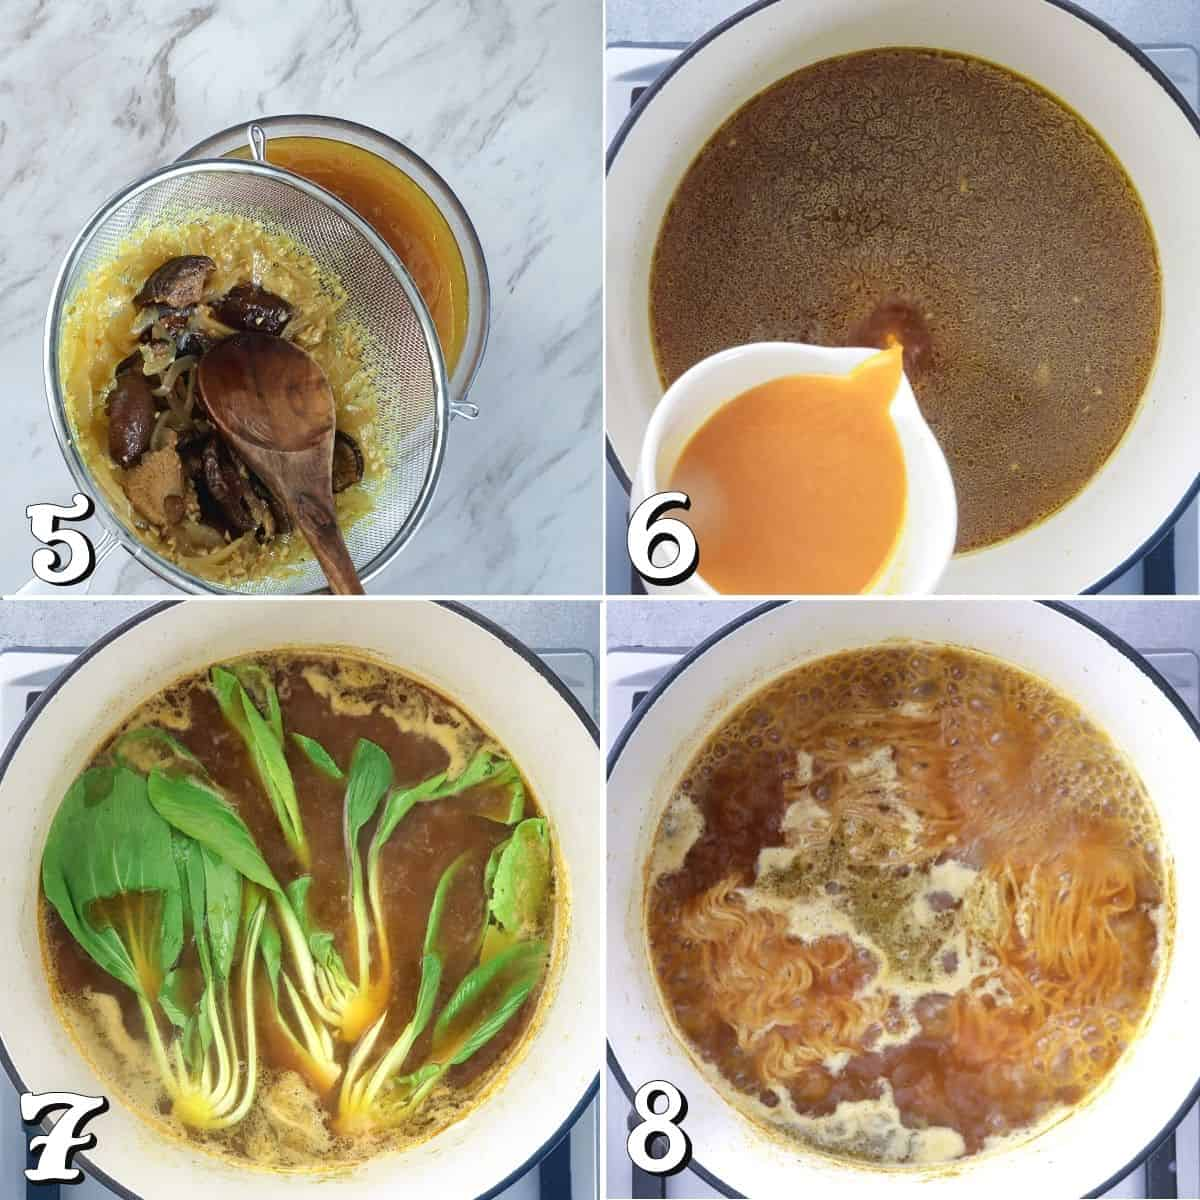 4 process photos of preparing the broth and bok choy in a pot.